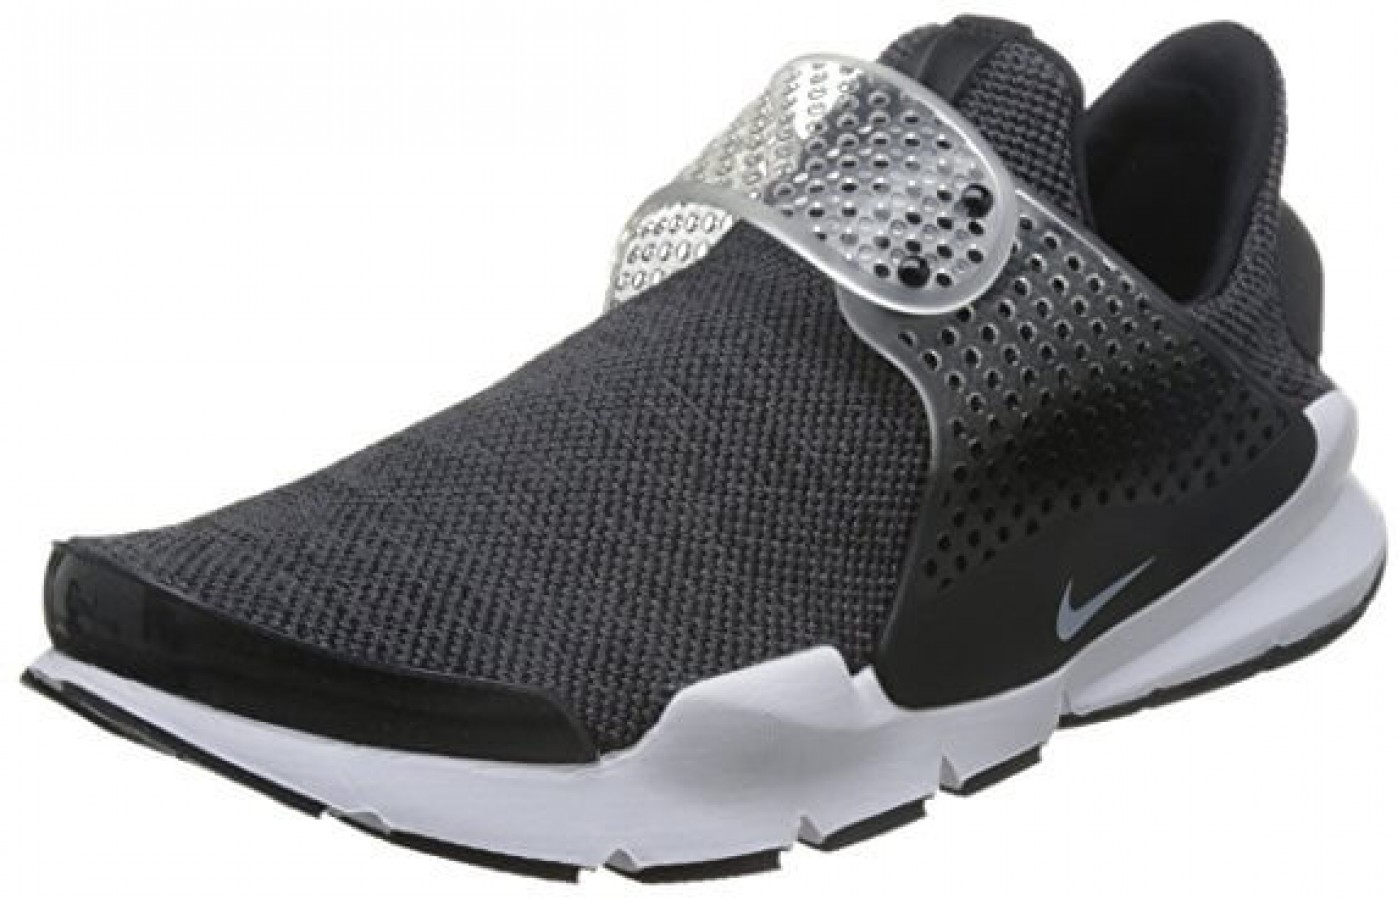 hot sales 6c1e6 ae8bb The Nike Sock Dart SE Premium angled front perspective ...